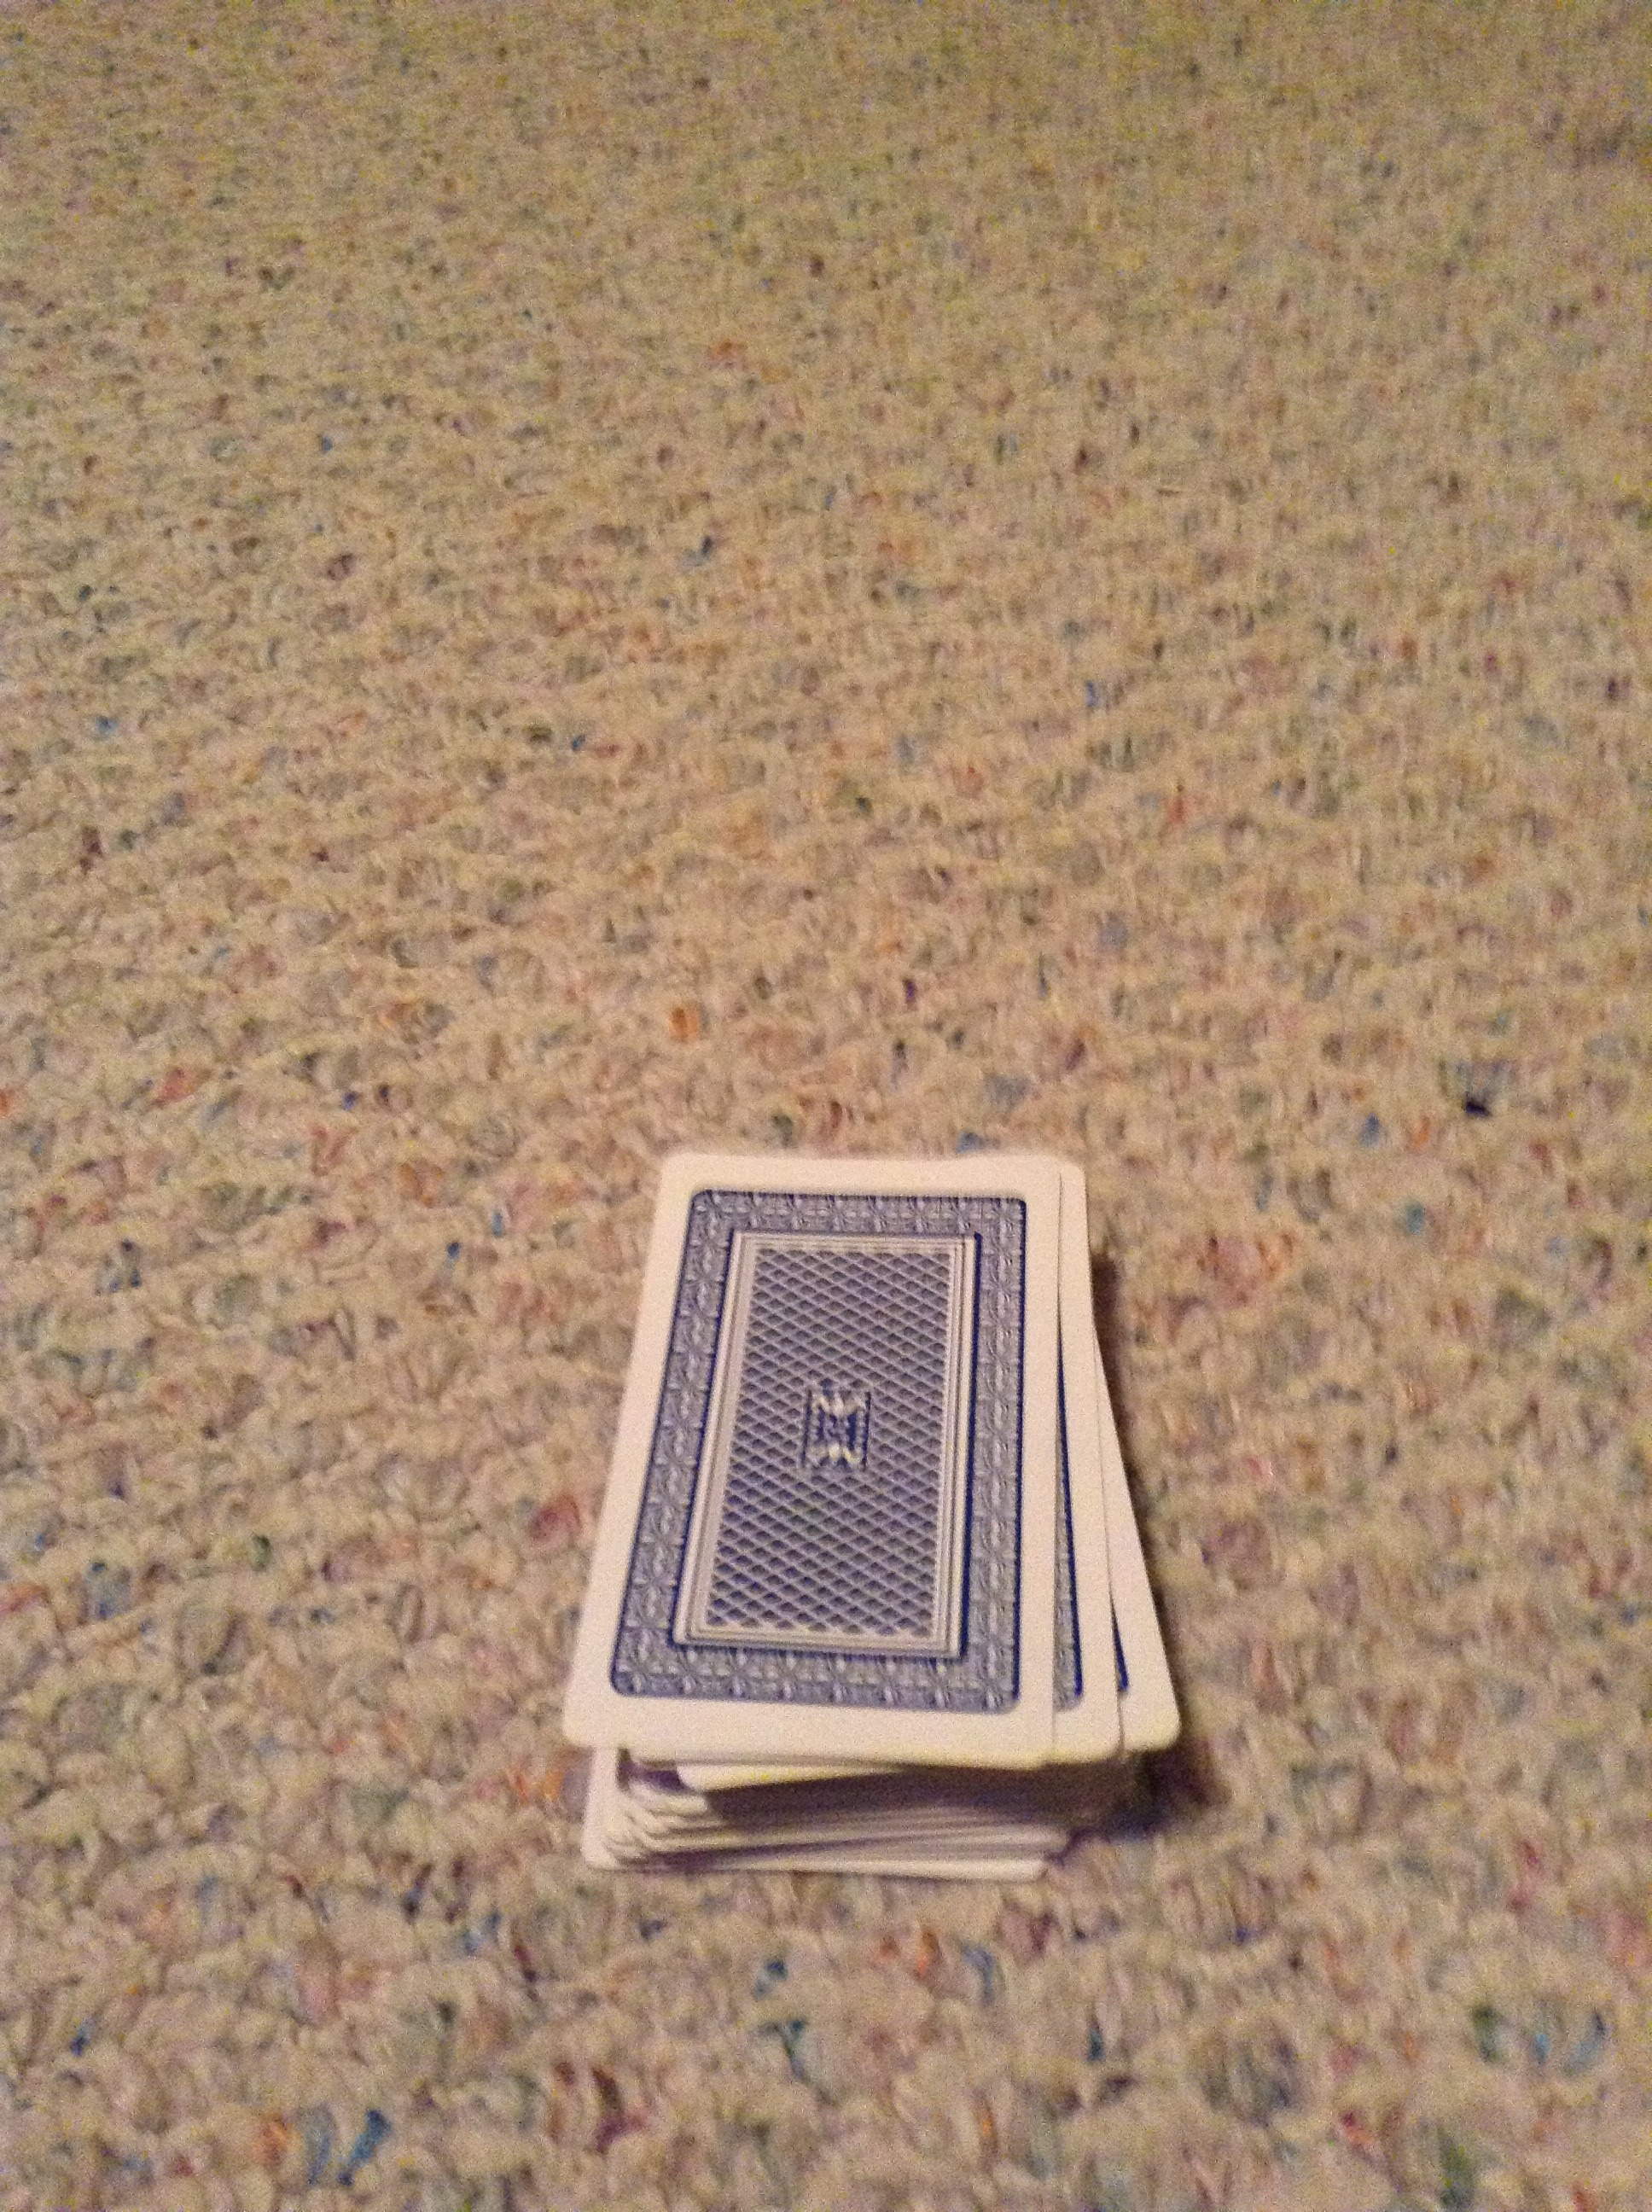 Picture of How to Do an Easy Cool Card Trick